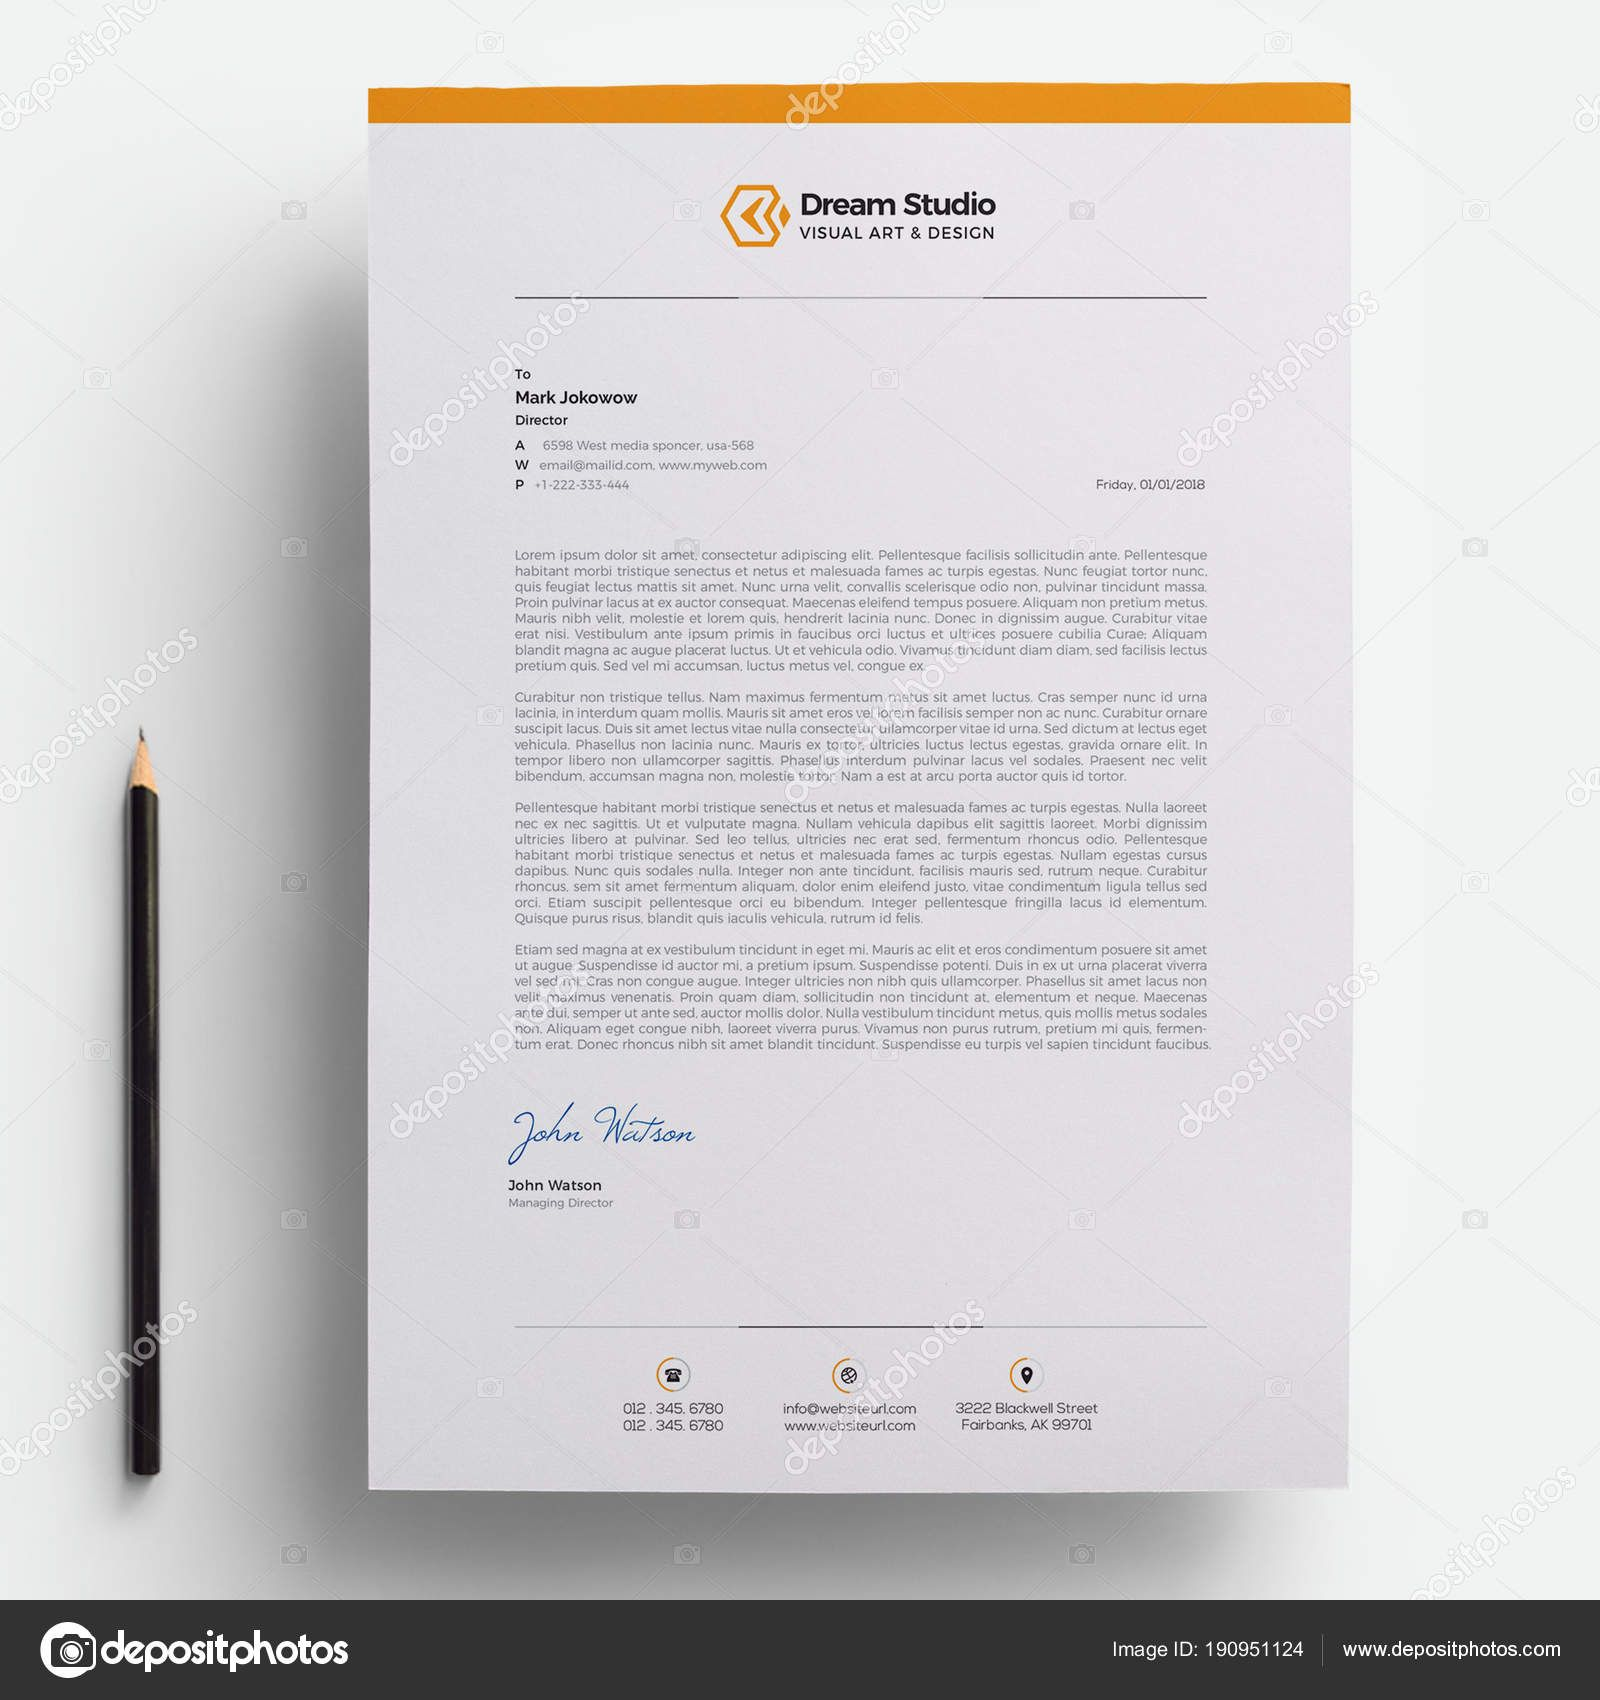 download modern company letterhead template — stock objective for a good cv academic sample phd application resume headline chartered accountant